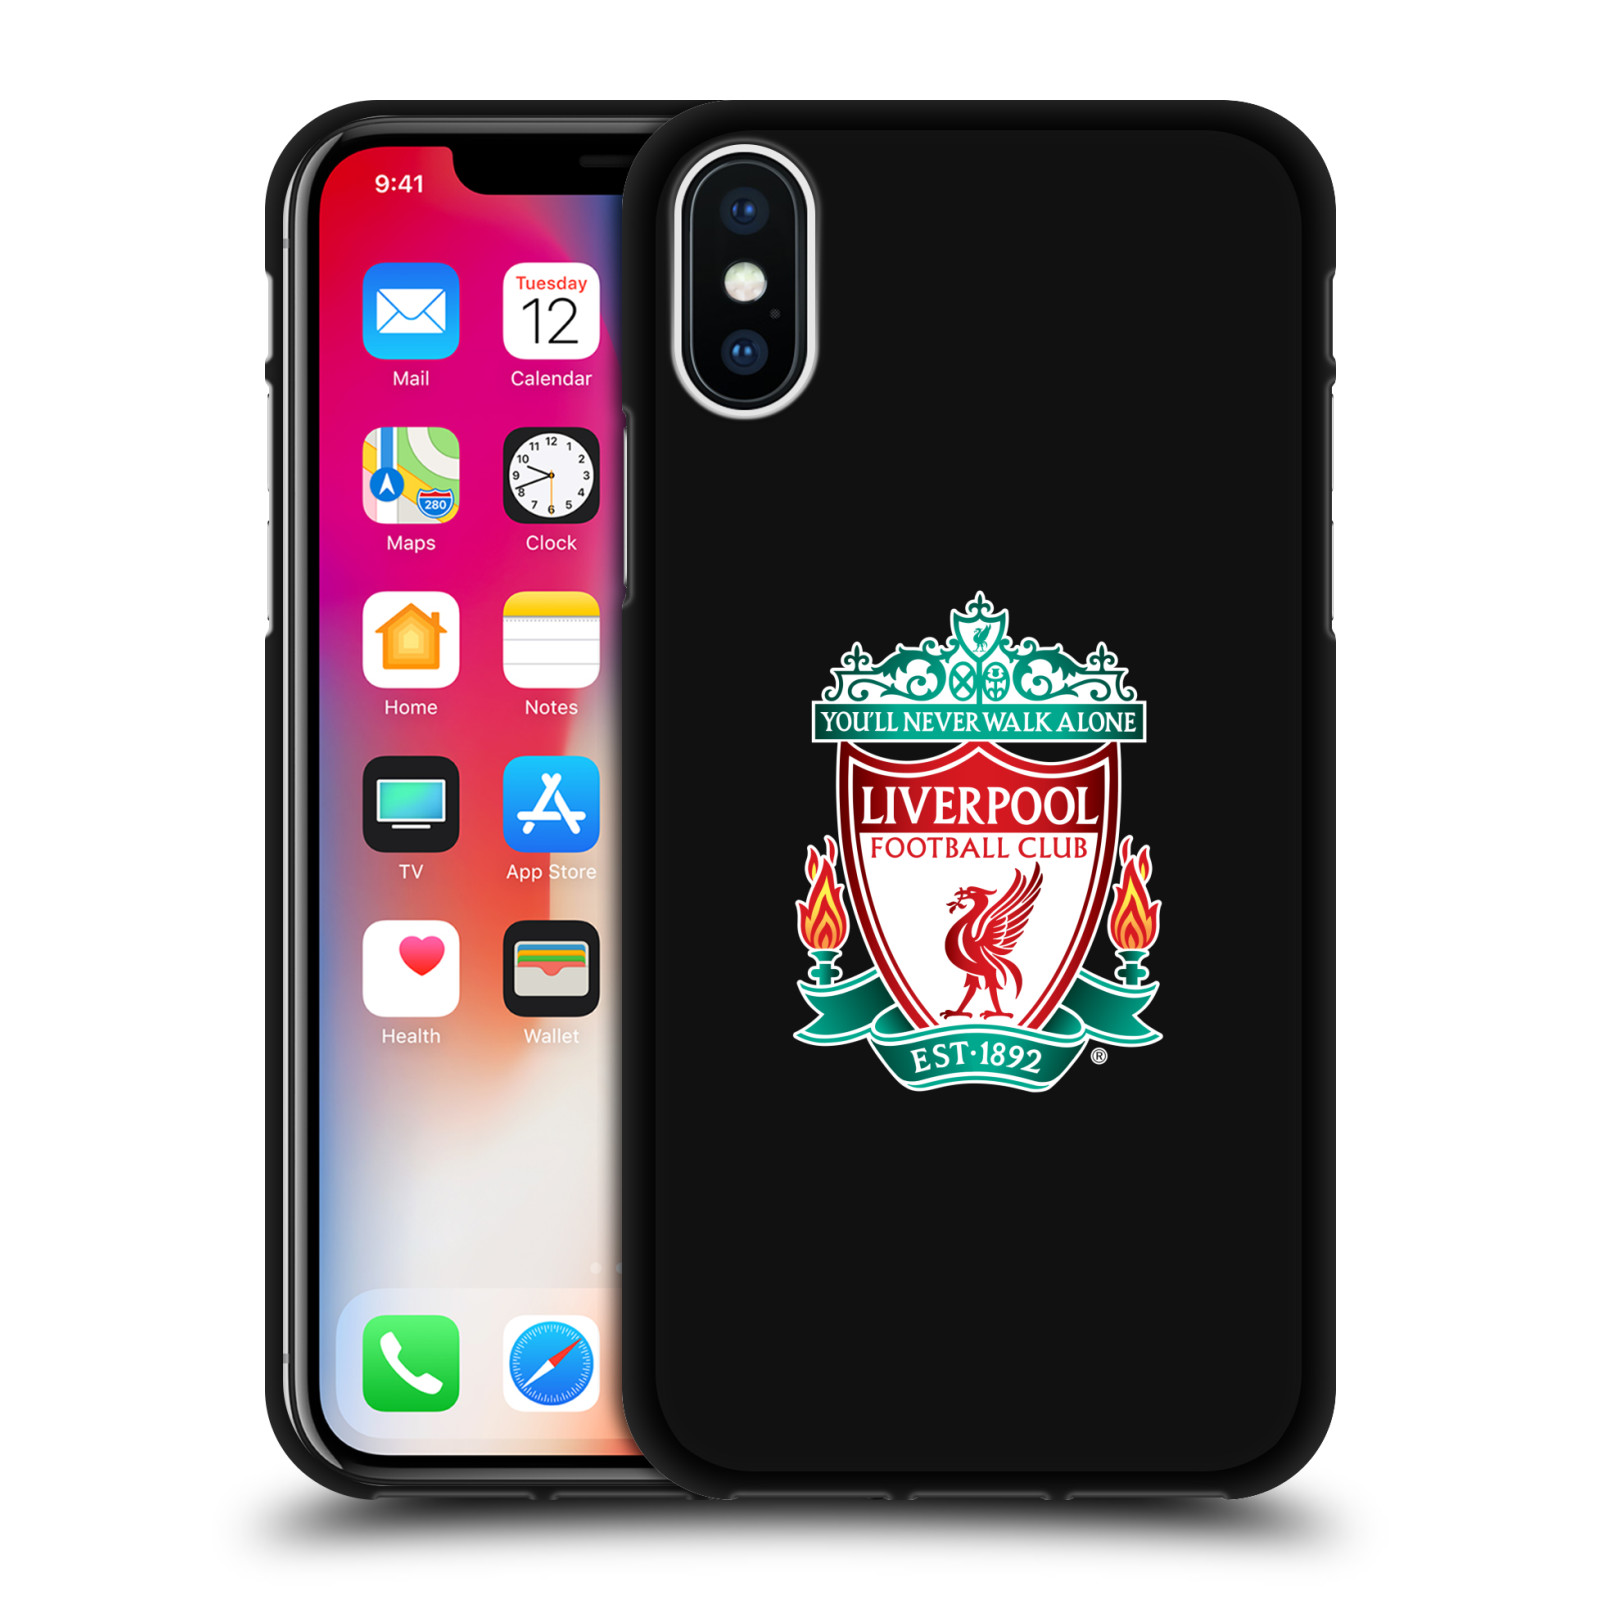 LIVERPOOL-FC-LFC-VARIOUS-DESIGNS-BLACK-SOFT-GEL-CASE-FOR-APPLE-iPHONE-PHONES